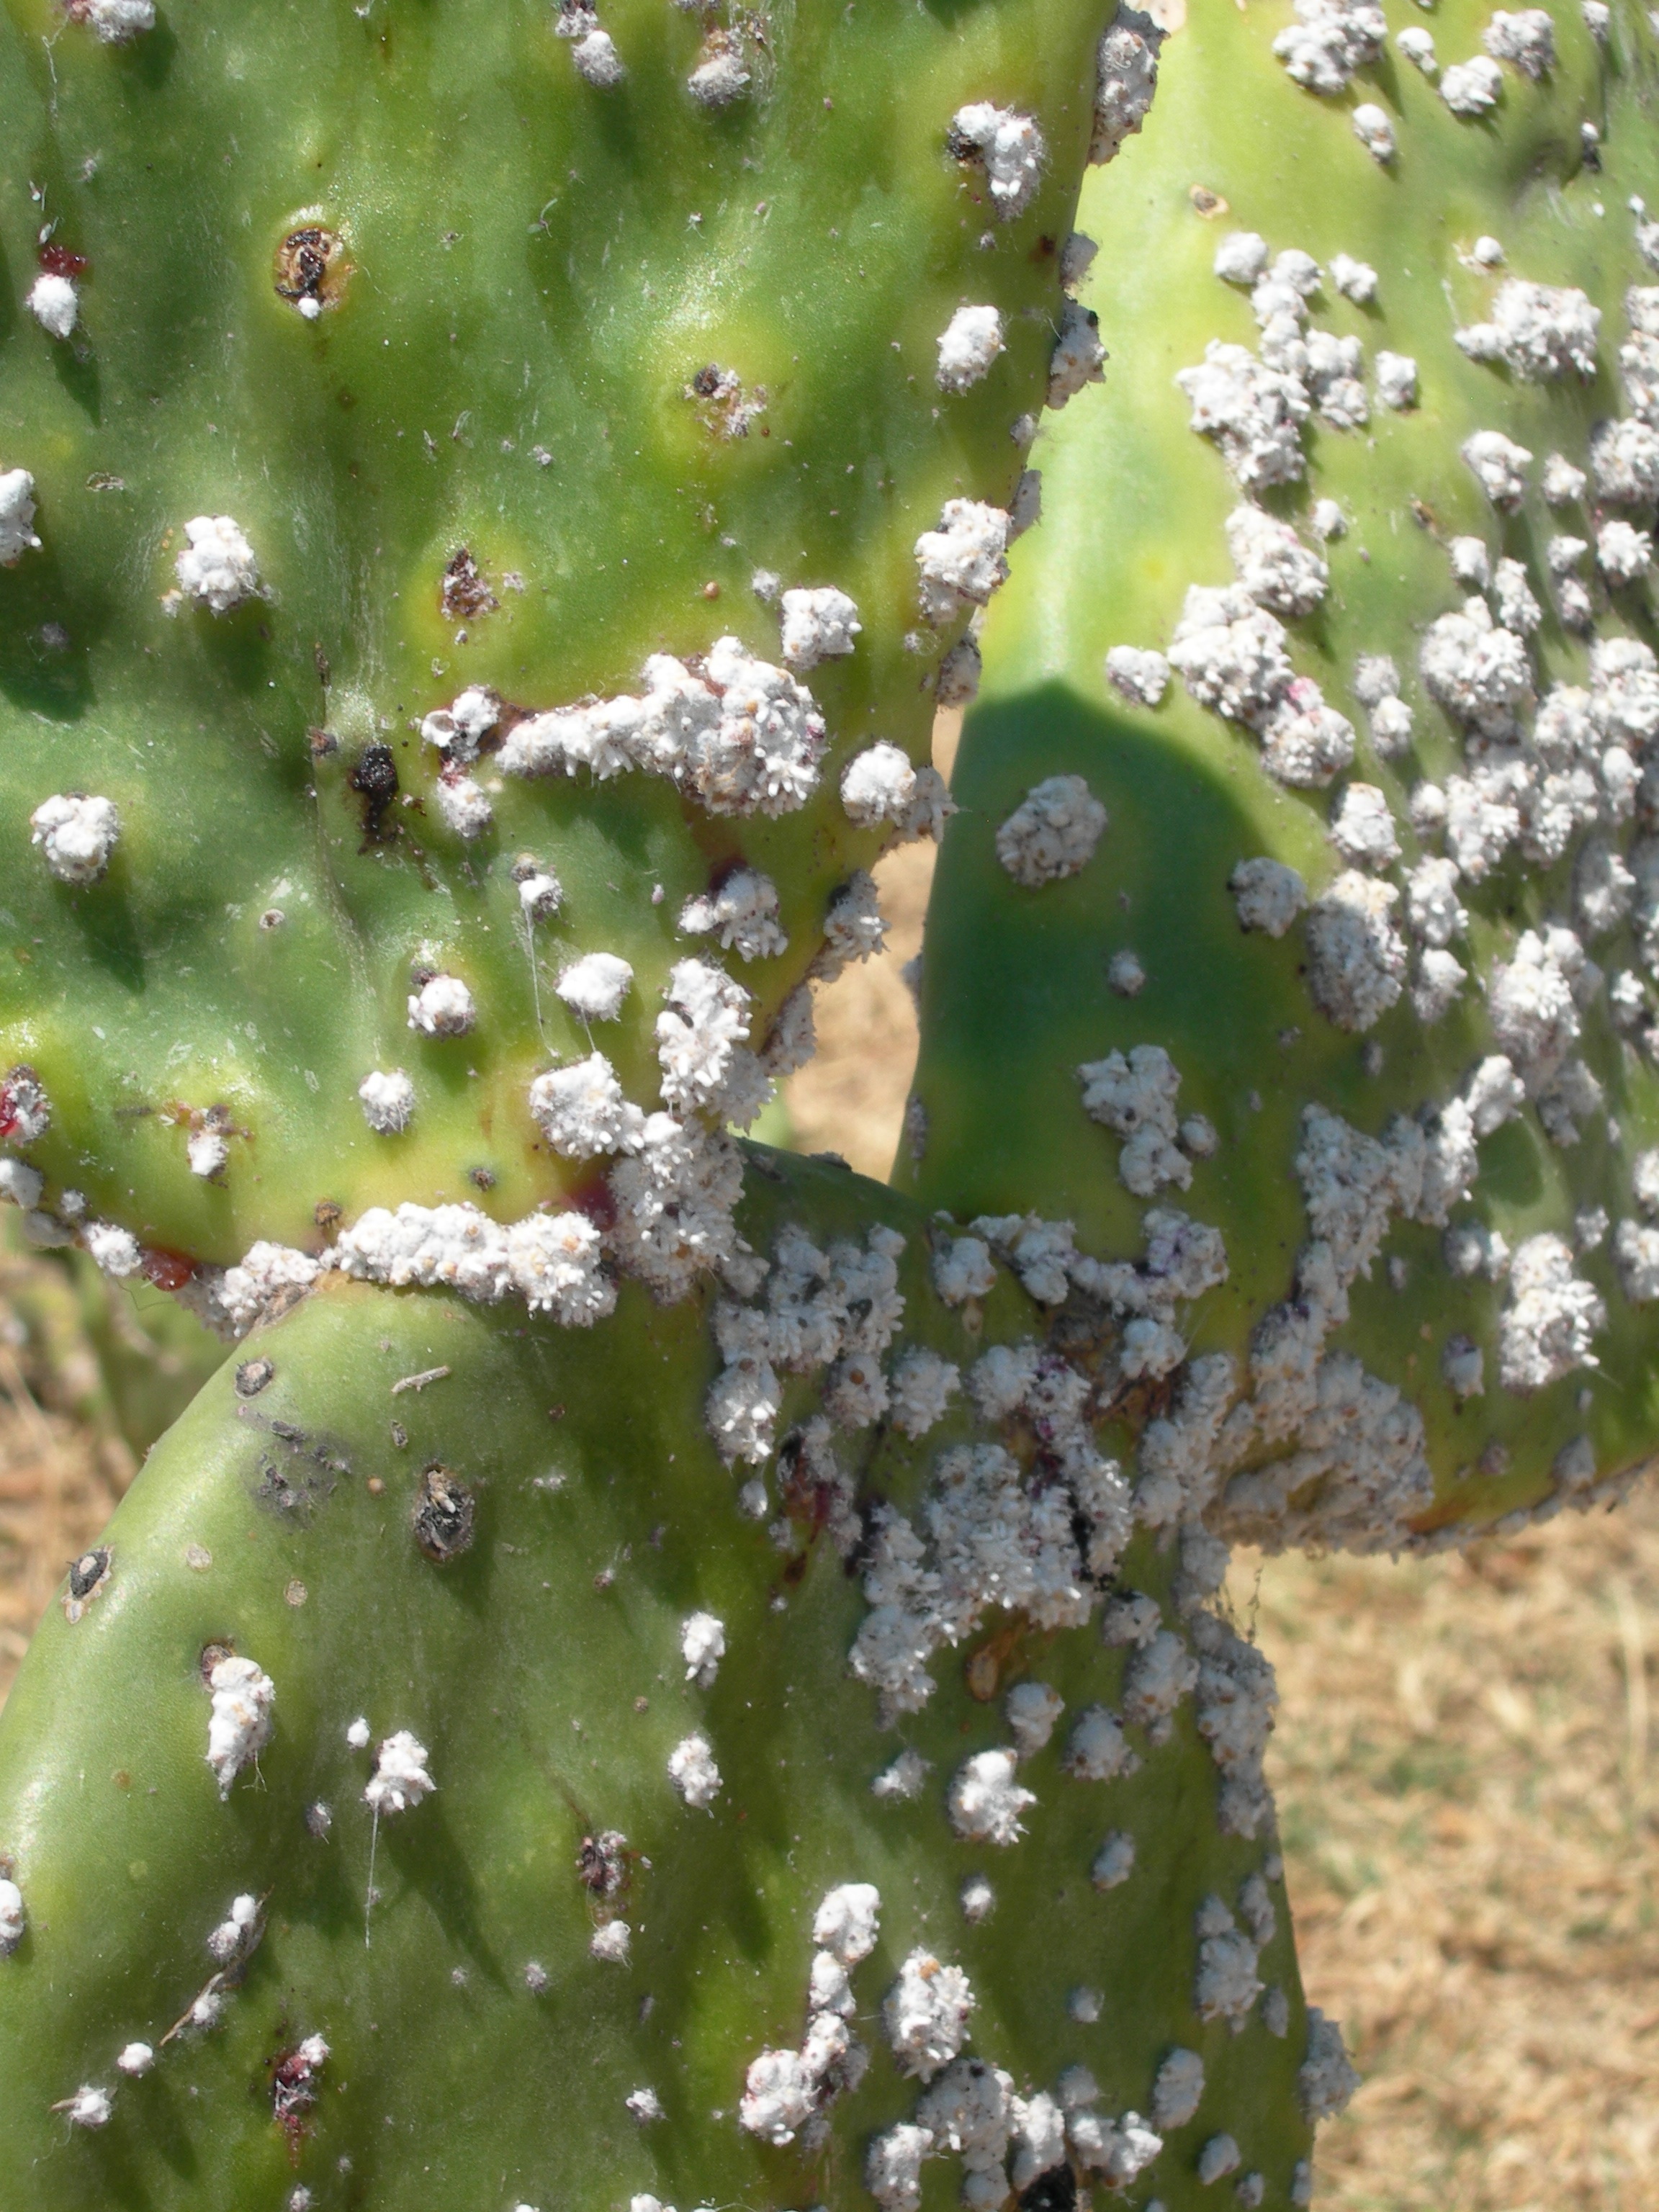 FIGURE 8. Nopal cactus infested with cochineal parasites. The white secretions protect the insects, who have burrowed into the nopal's flesh. Oaxaca, April 2006. Photo by Byron Hamann.